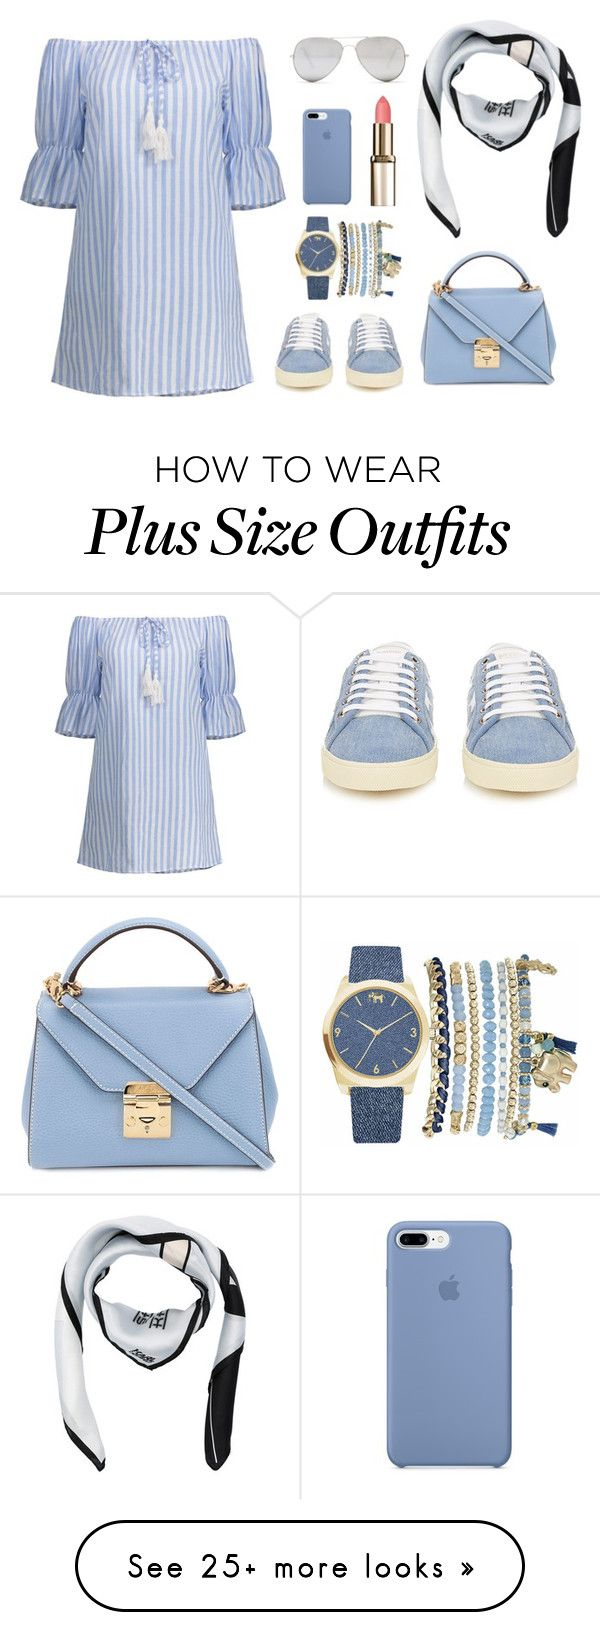 """Untitled #99"" by jauzamaharani on Polyvore featuring Yves Saint Laurent, Mark Cross, Sunny Rebel, Karl Lagerfeld and Mixit"